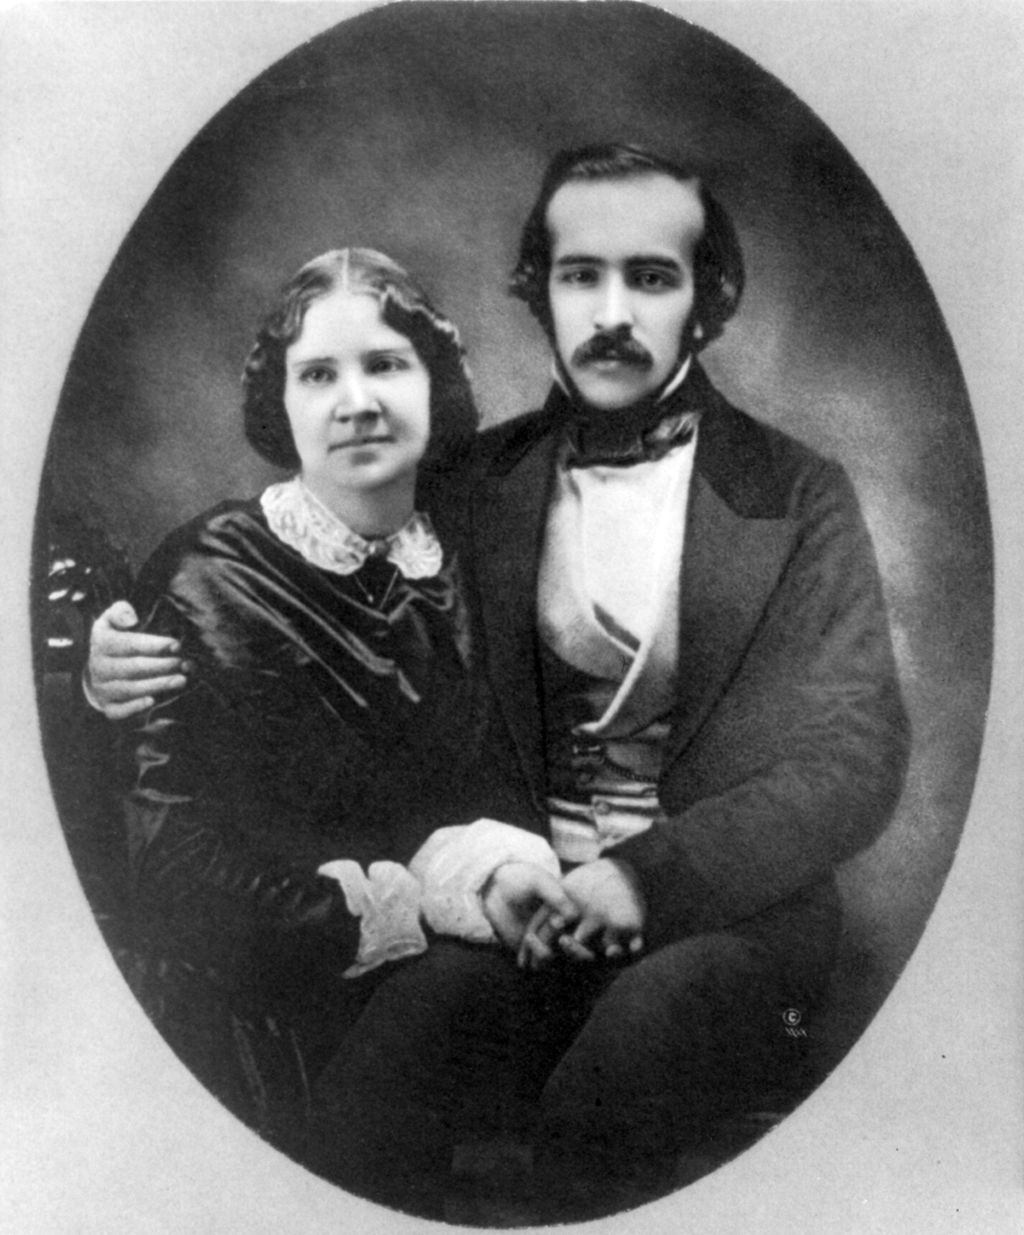 <b>Jenny Lind</b>     	</br>Jenny Lind with her accompanist and soon to be husband Otto Goldschmidt.</br><br/><b>Source: </b><i>Public Domain. https://en.wikipedia.org/wiki/Jenny_Lind_private_railroad_car#/media/File:Jenny_Lind_and_Otto_Goldschmidt_cph.3a48920.jpg</i>